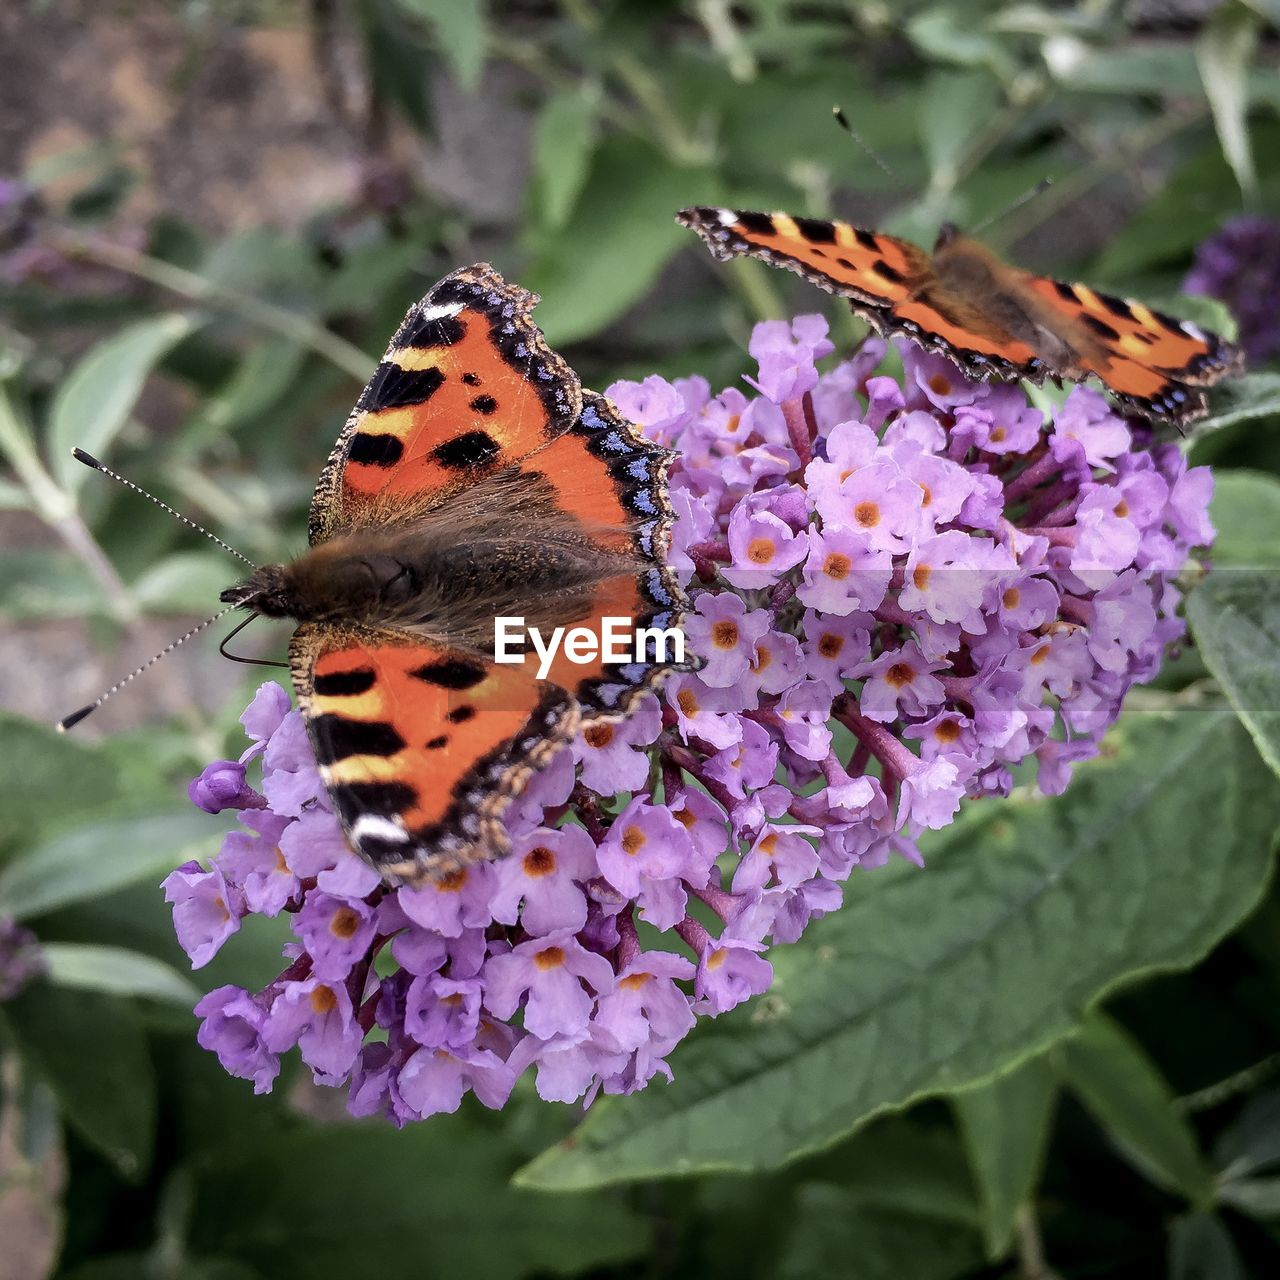 flower, insect, one animal, purple, beauty in nature, nature, animals in the wild, animal themes, fragility, freshness, butterfly - insect, close-up, outdoors, no people, day, growth, plant, focus on foreground, pollination, petal, animal wildlife, flower head, perching